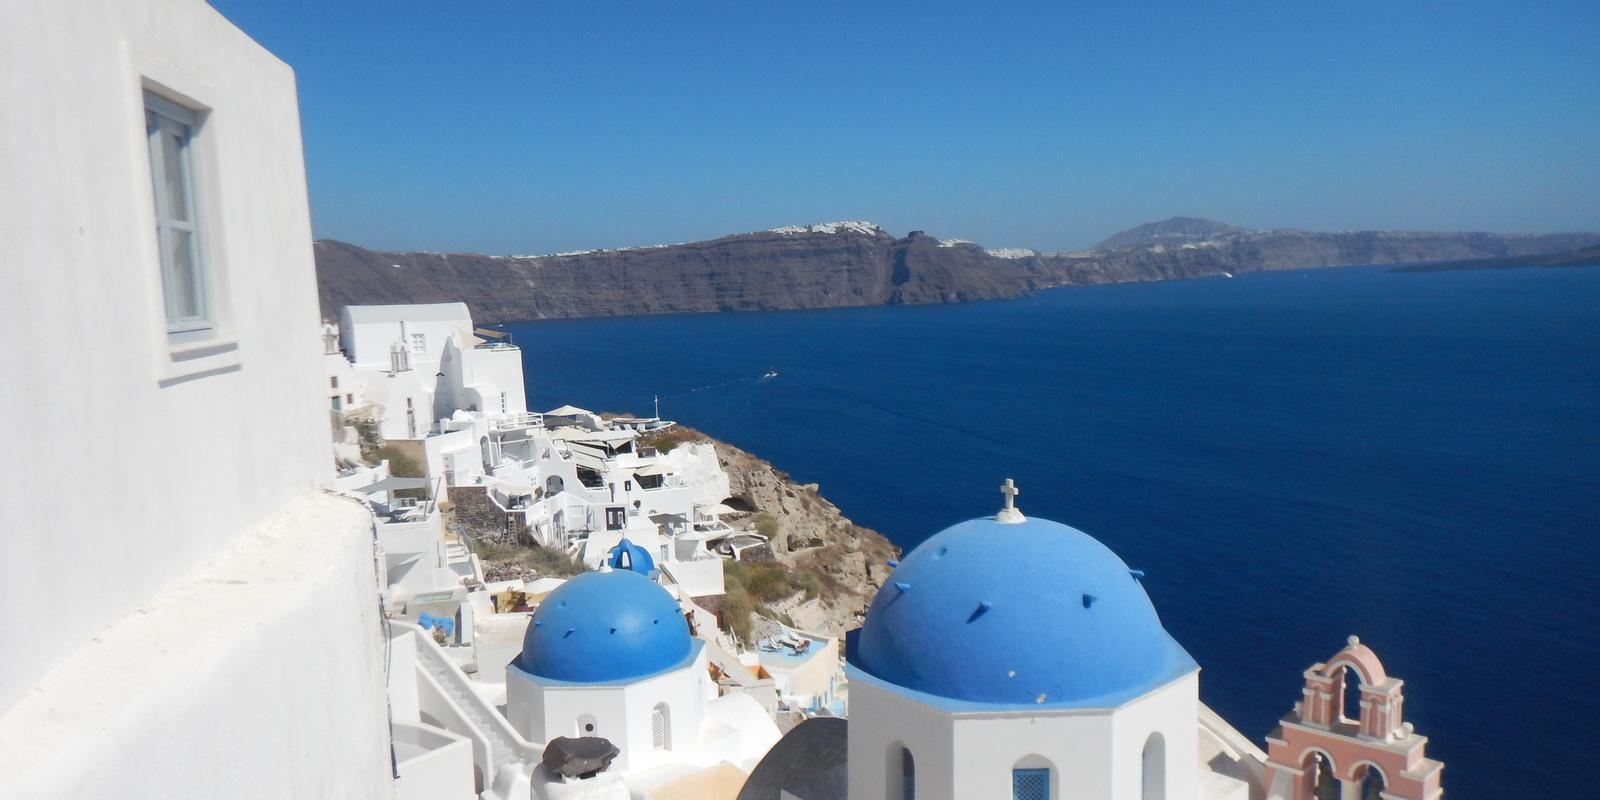 From Mykonos, Naxos, to Santorini. The small Cyclades: breathtaking wonders.